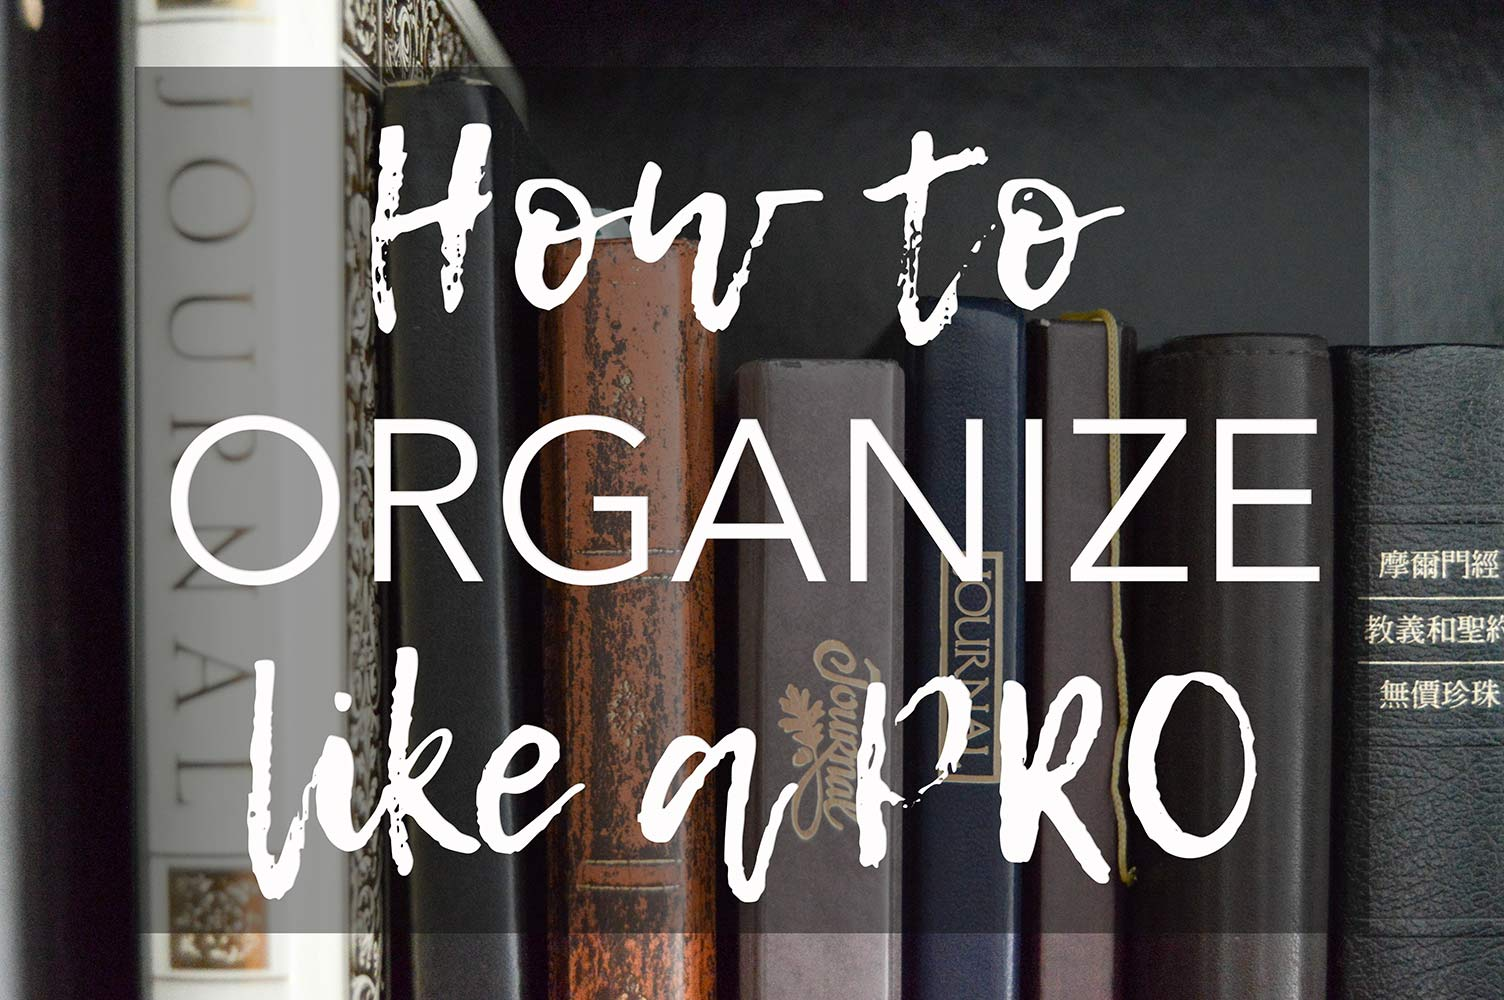 Tips for how to purge and organize your home like a pro. Organizing steps: categorizing and finding homes for things. 5 home organizing rules to live by.